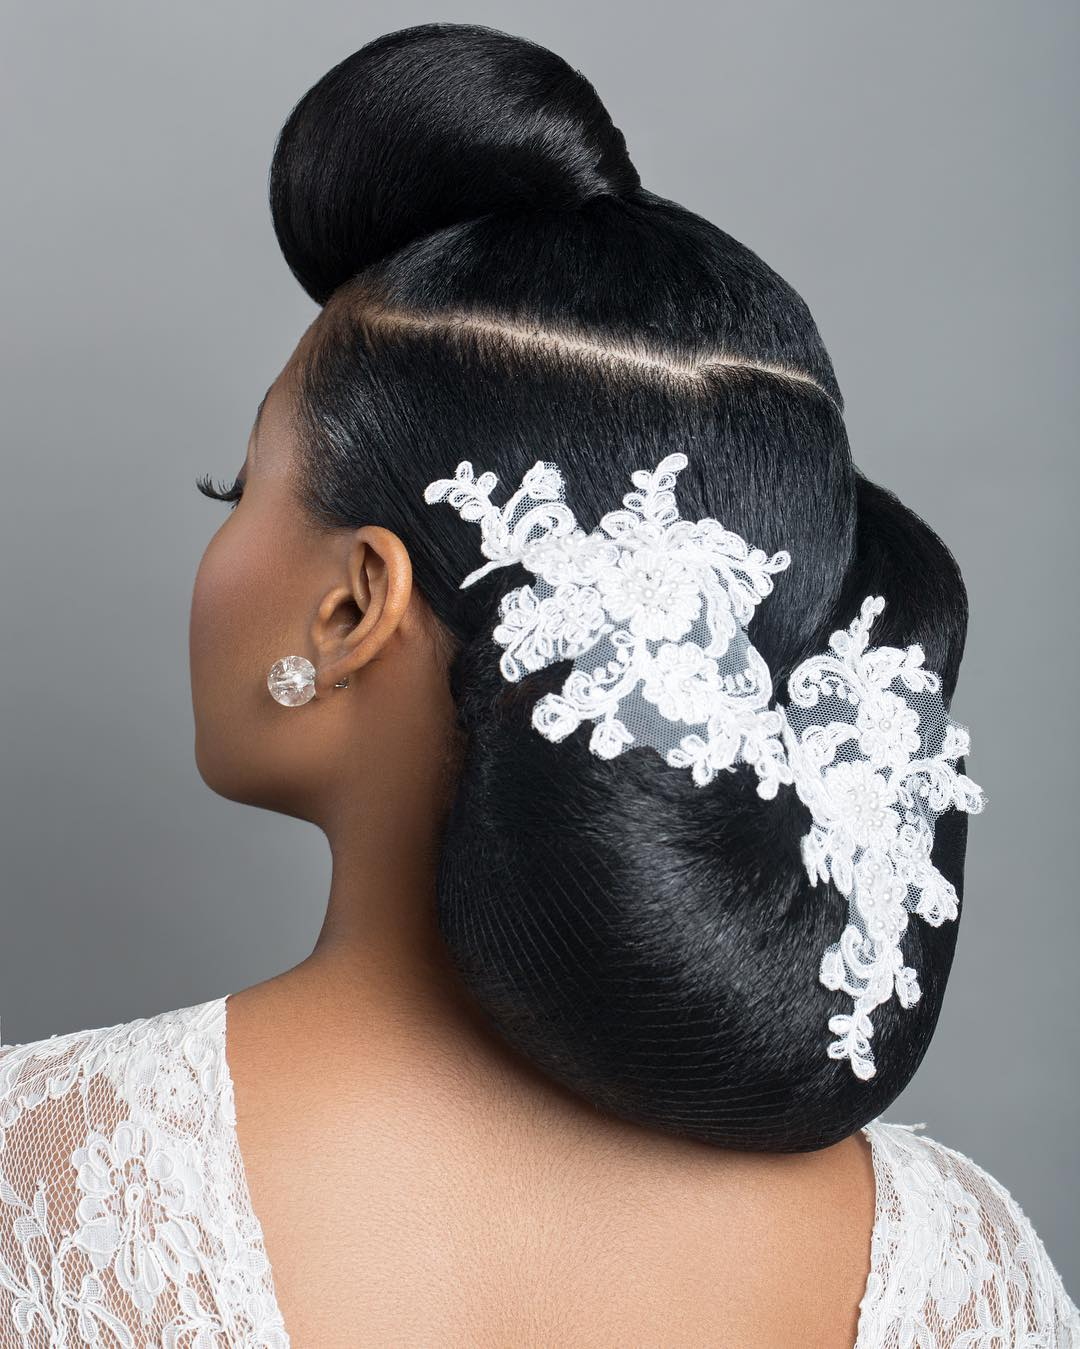 Hairstyles For Weddings Black Hair: These Are Not Your Average Bridal Updos